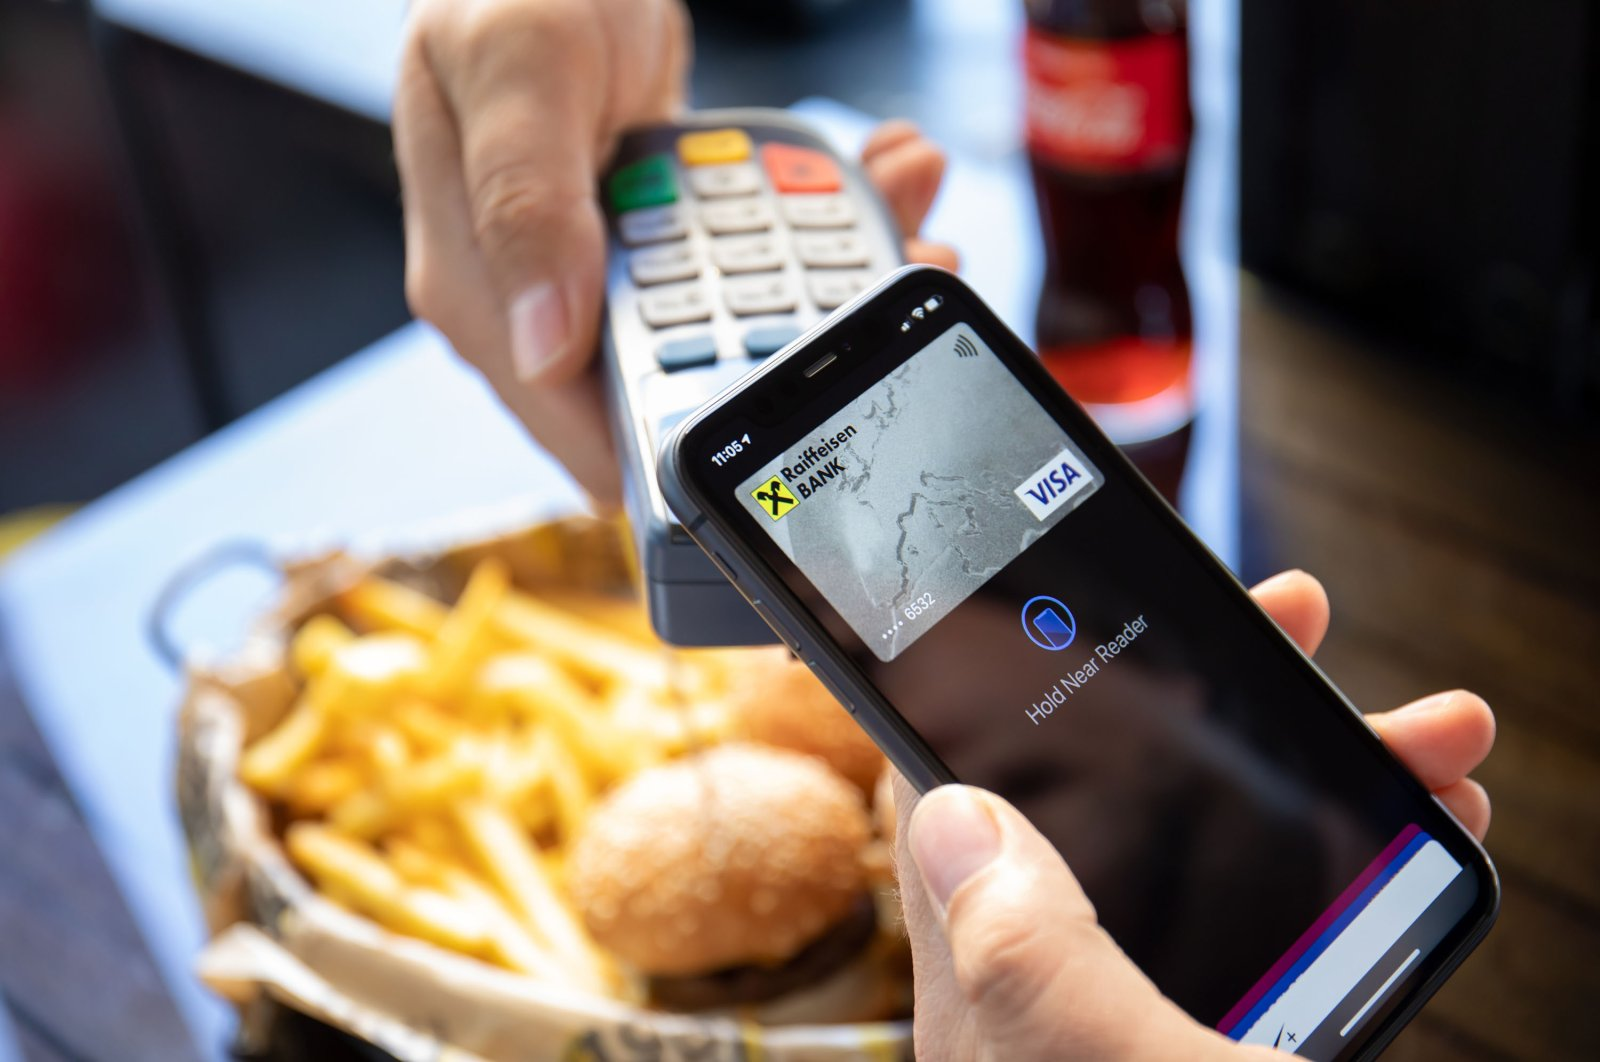 A man holds his smartphone with Apple Pay on the screen to make an online payment, Antalya, southern Turkey, Oct. 13, 2020. (Shutterstock Photo)